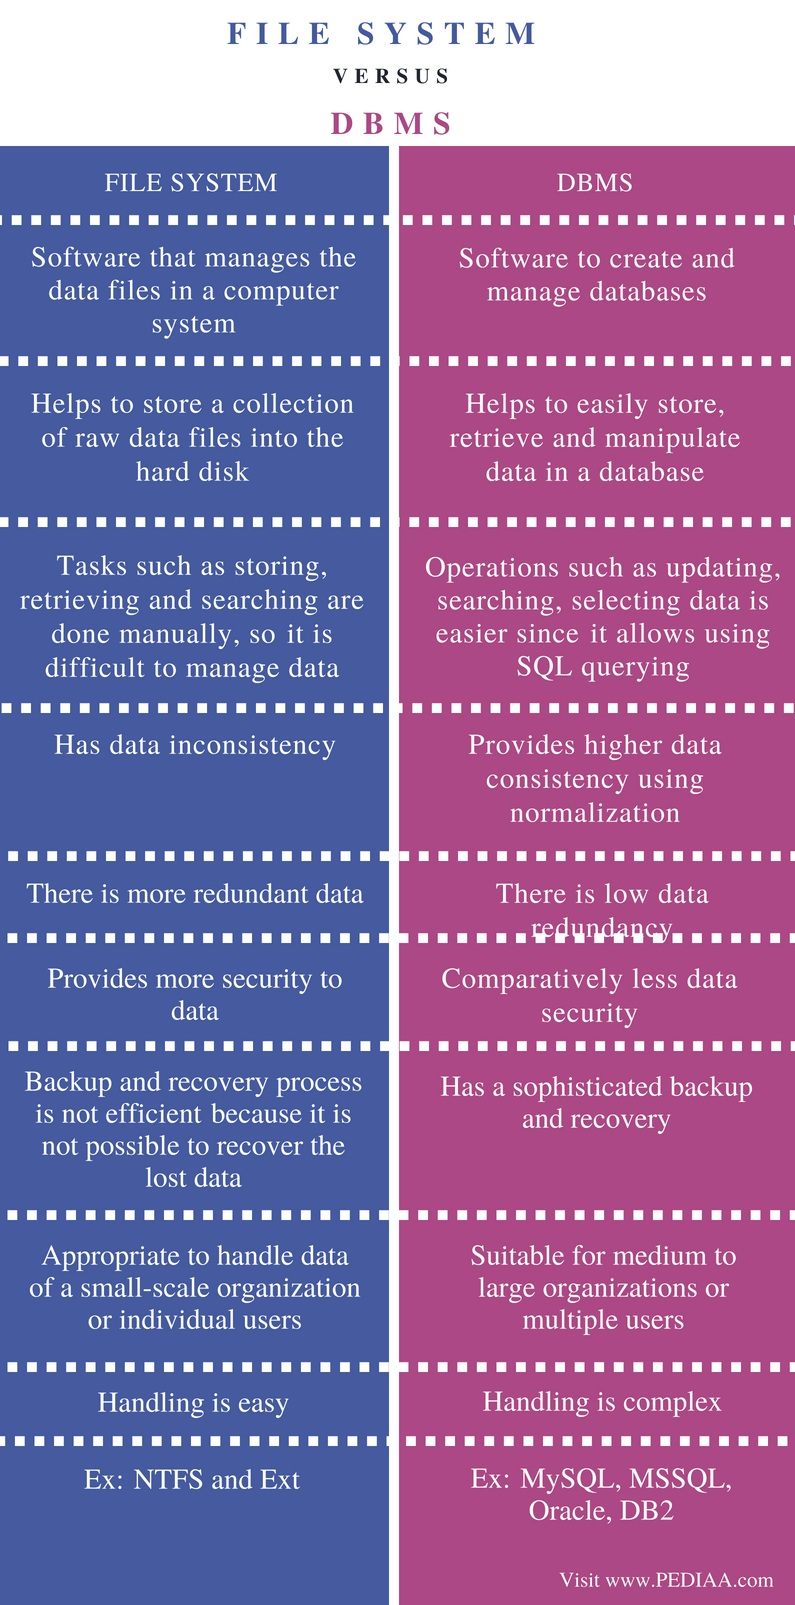 Difference Between File System and DBMS - Comparison Summary